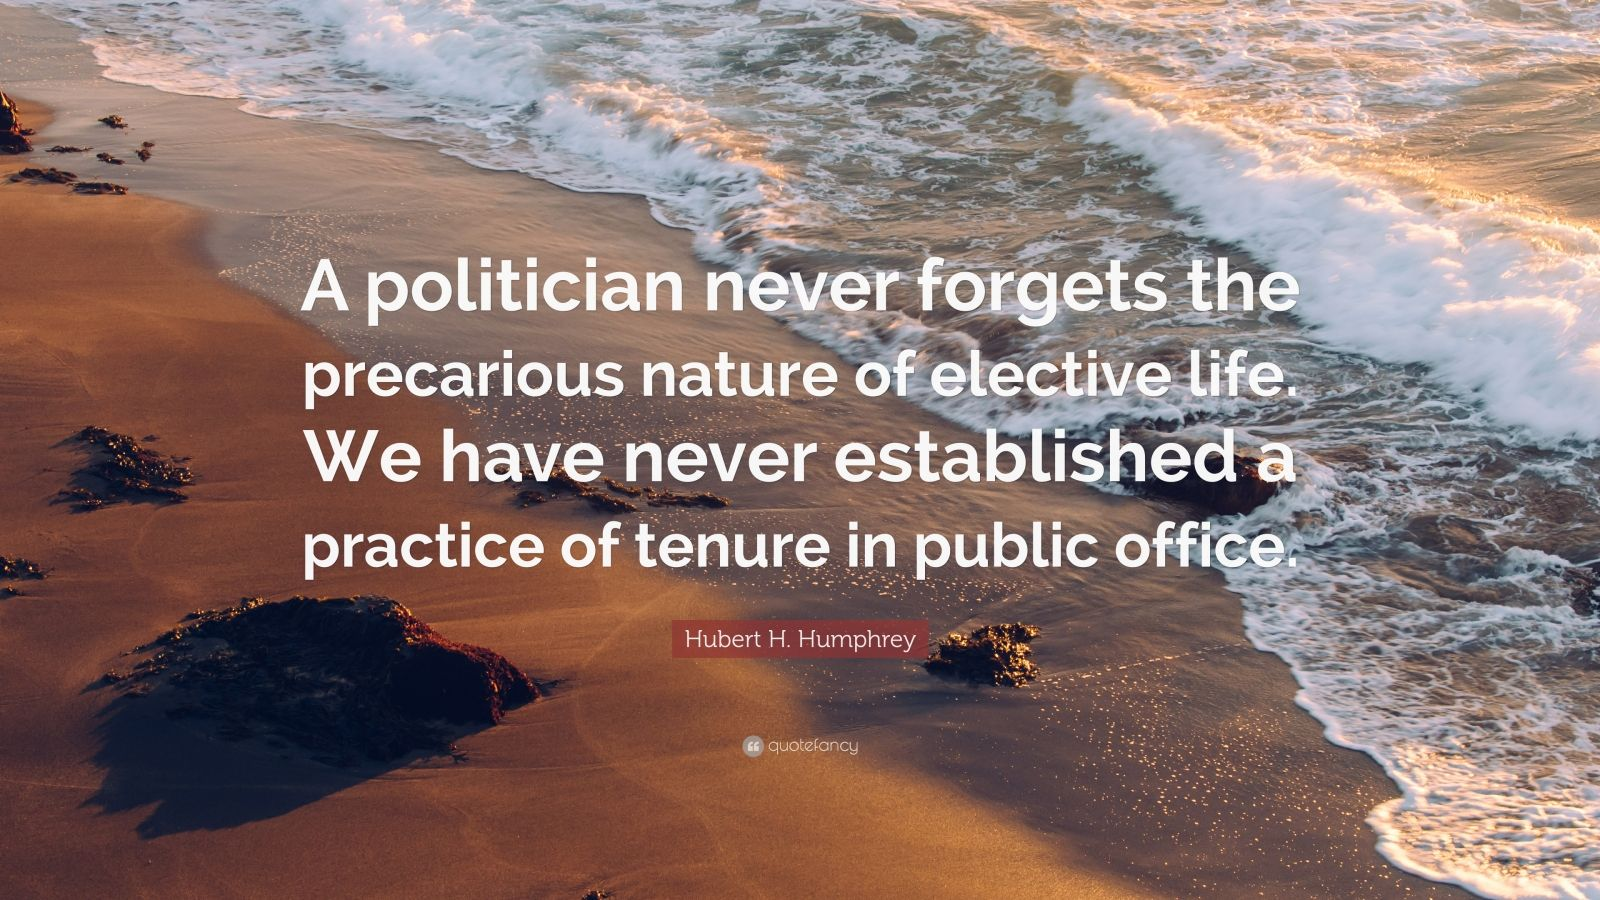 """Hubert H. Humphrey Quote: """"A politician never forgets the precarious nature of elective life. We have never established a practice of tenure in public office."""""""